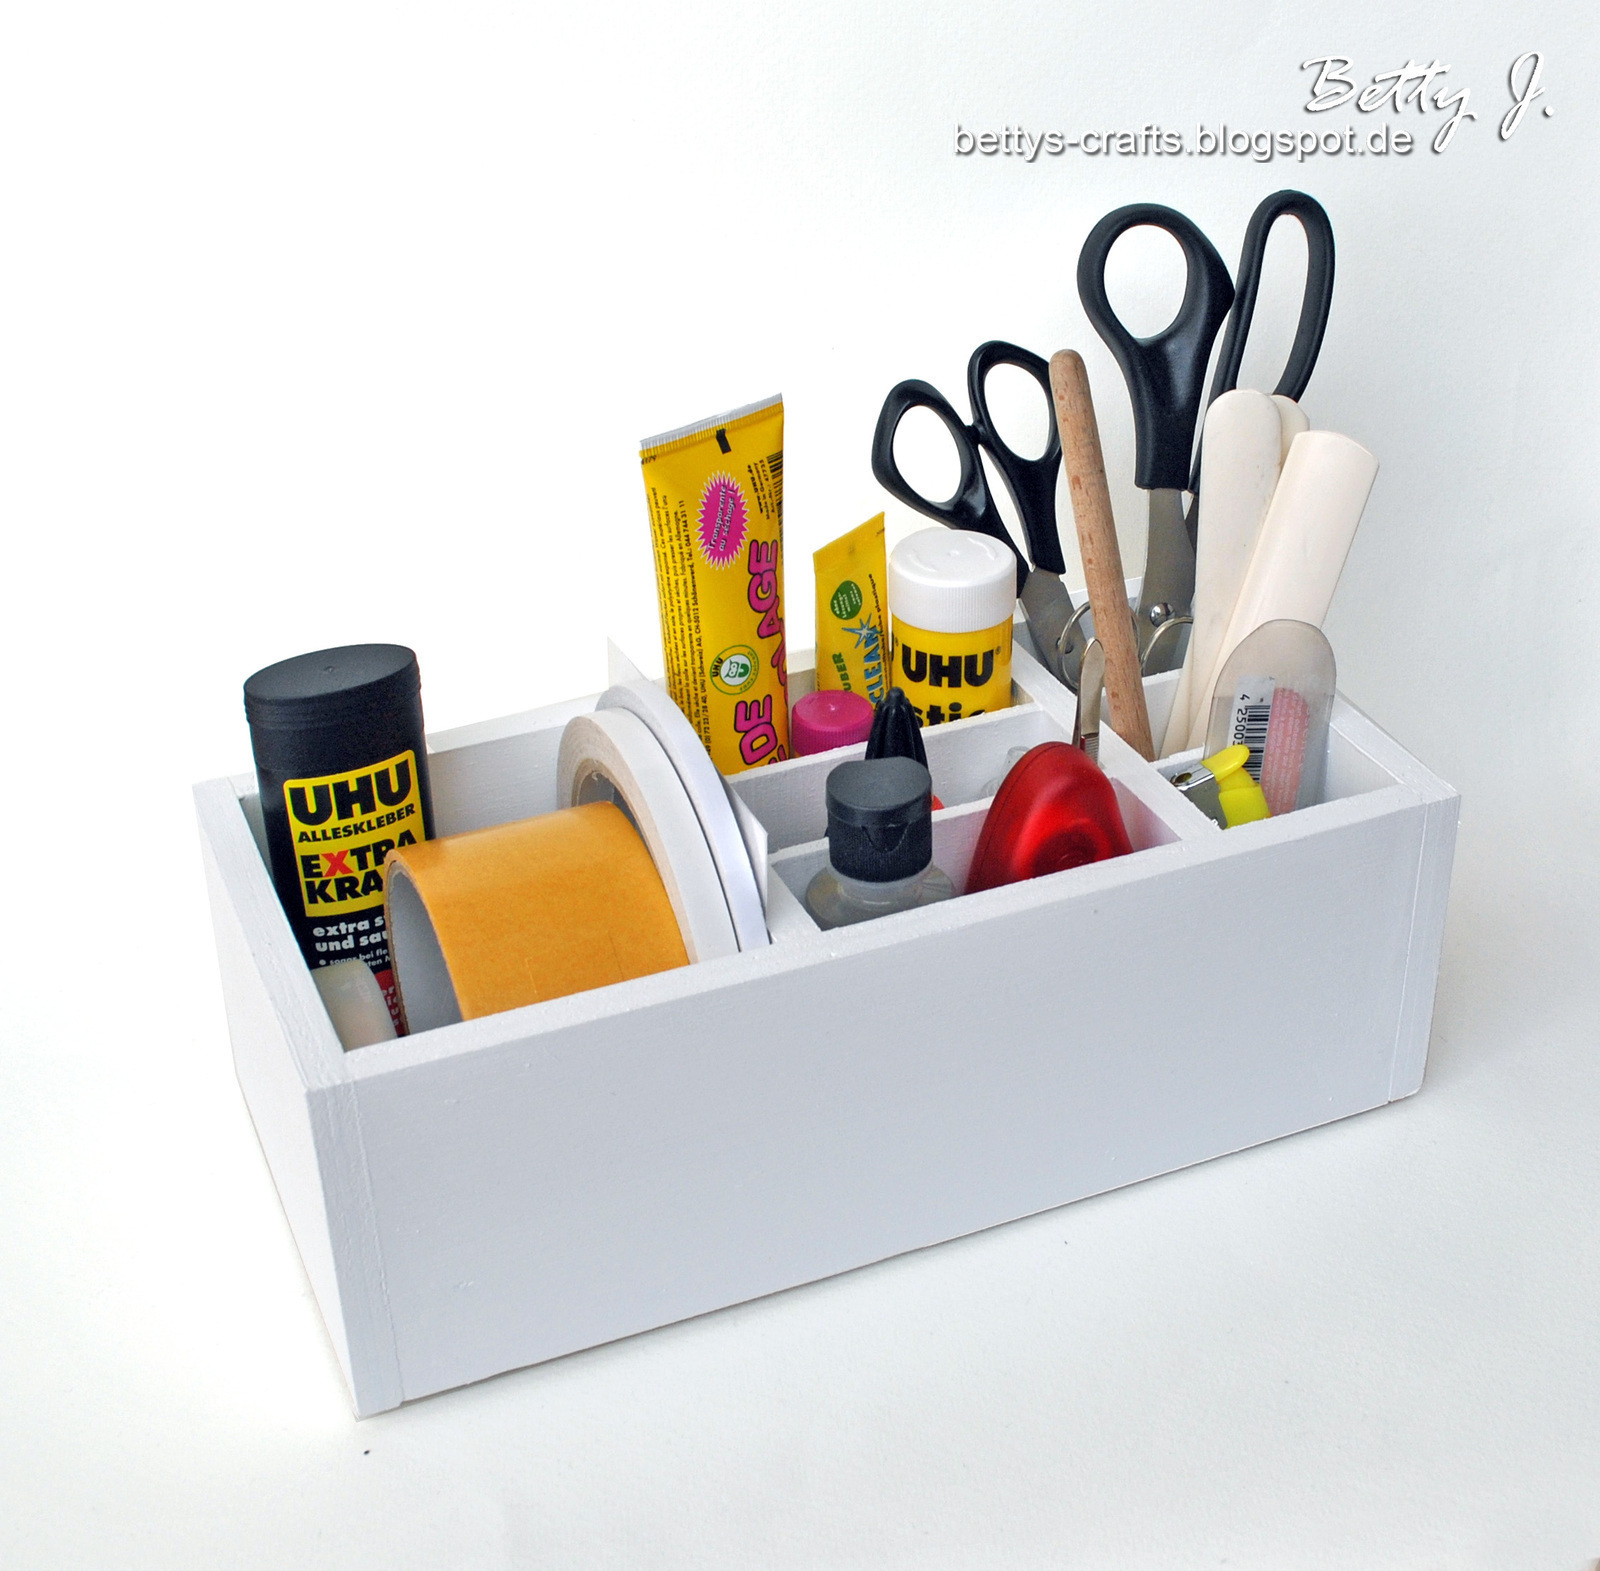 DIY Desktop Organizer With Simple Video Tutorial Free Pictures On How To Make